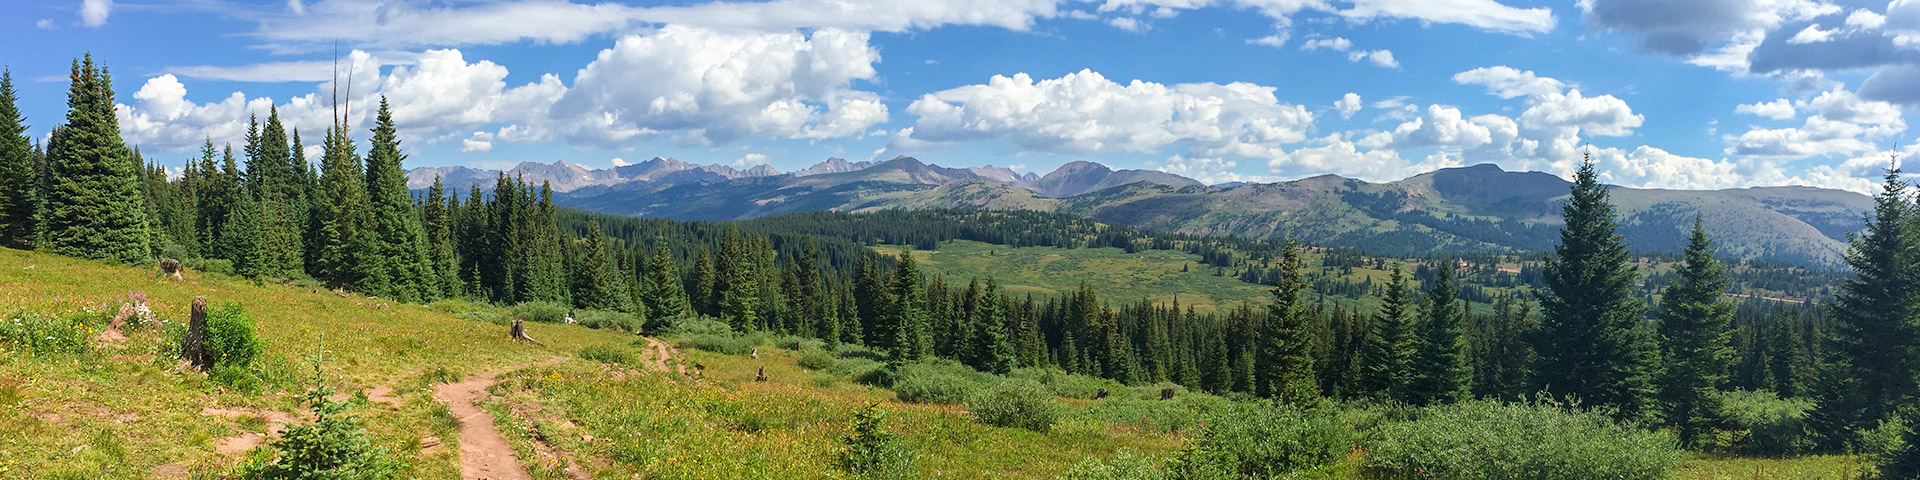 Panoramic views from the Shrine Ridge trail hike near Vail, Colorado